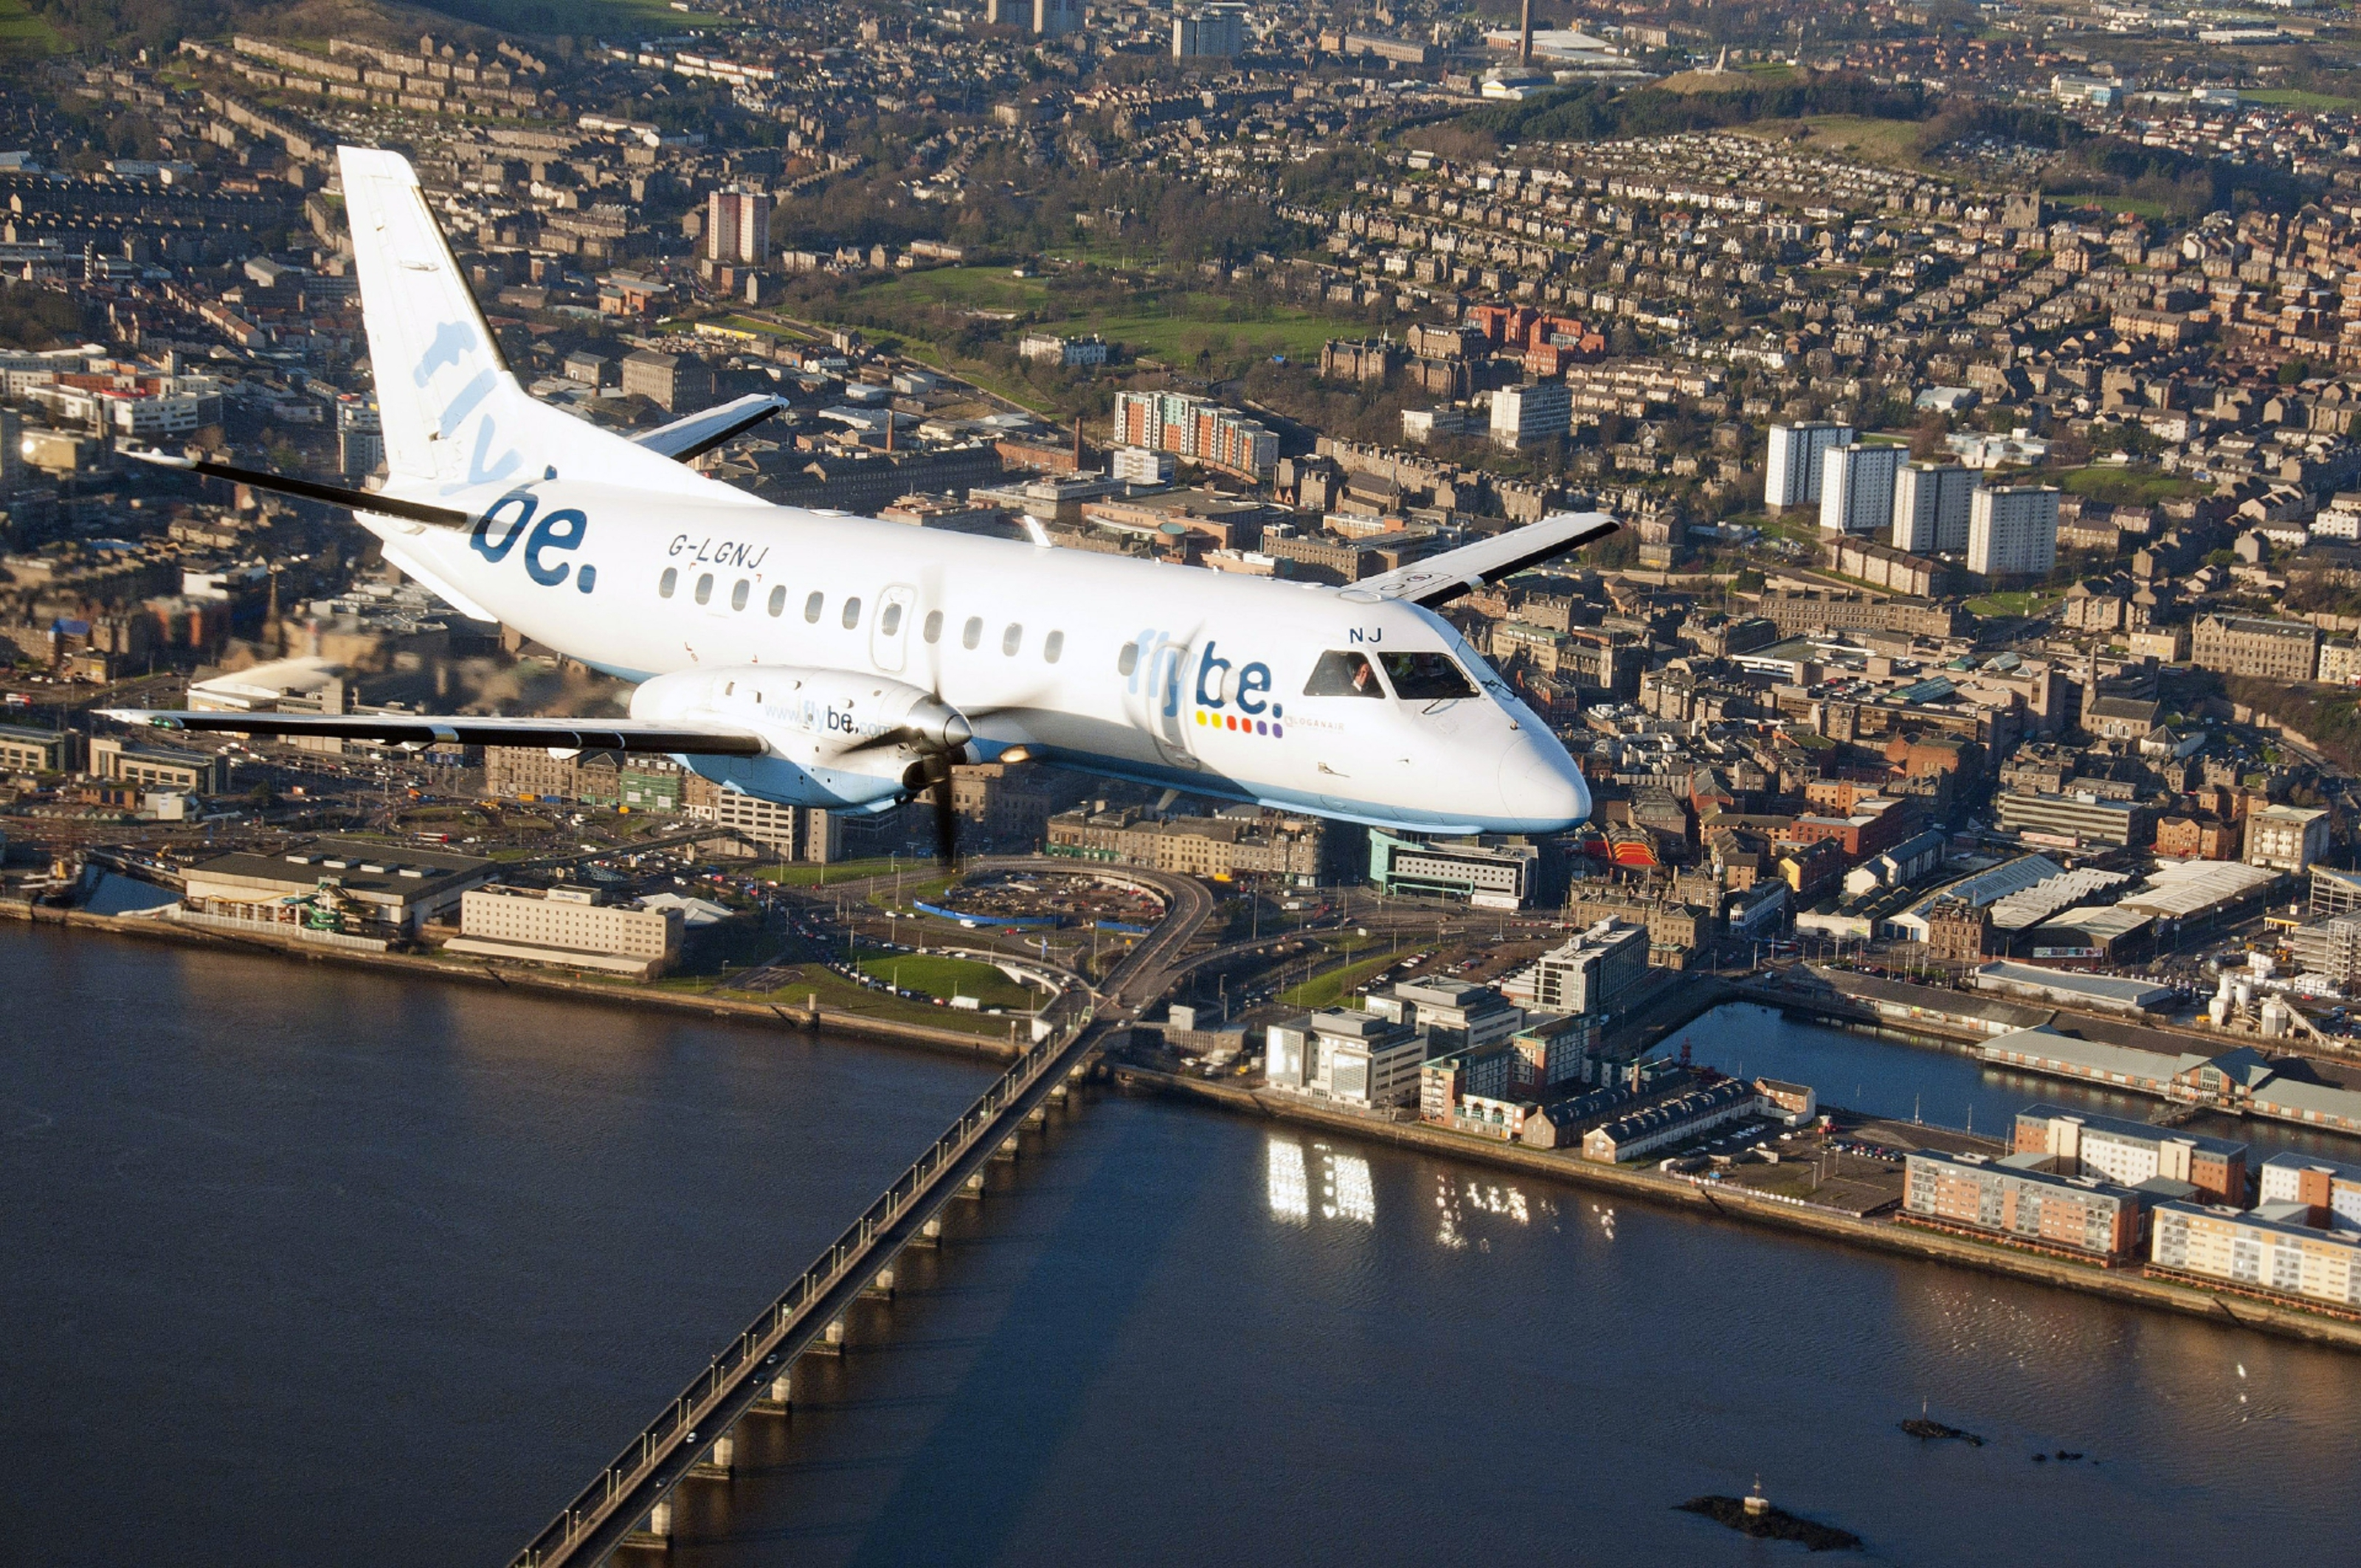 A Loganair Flybe aircraft over Dundee.